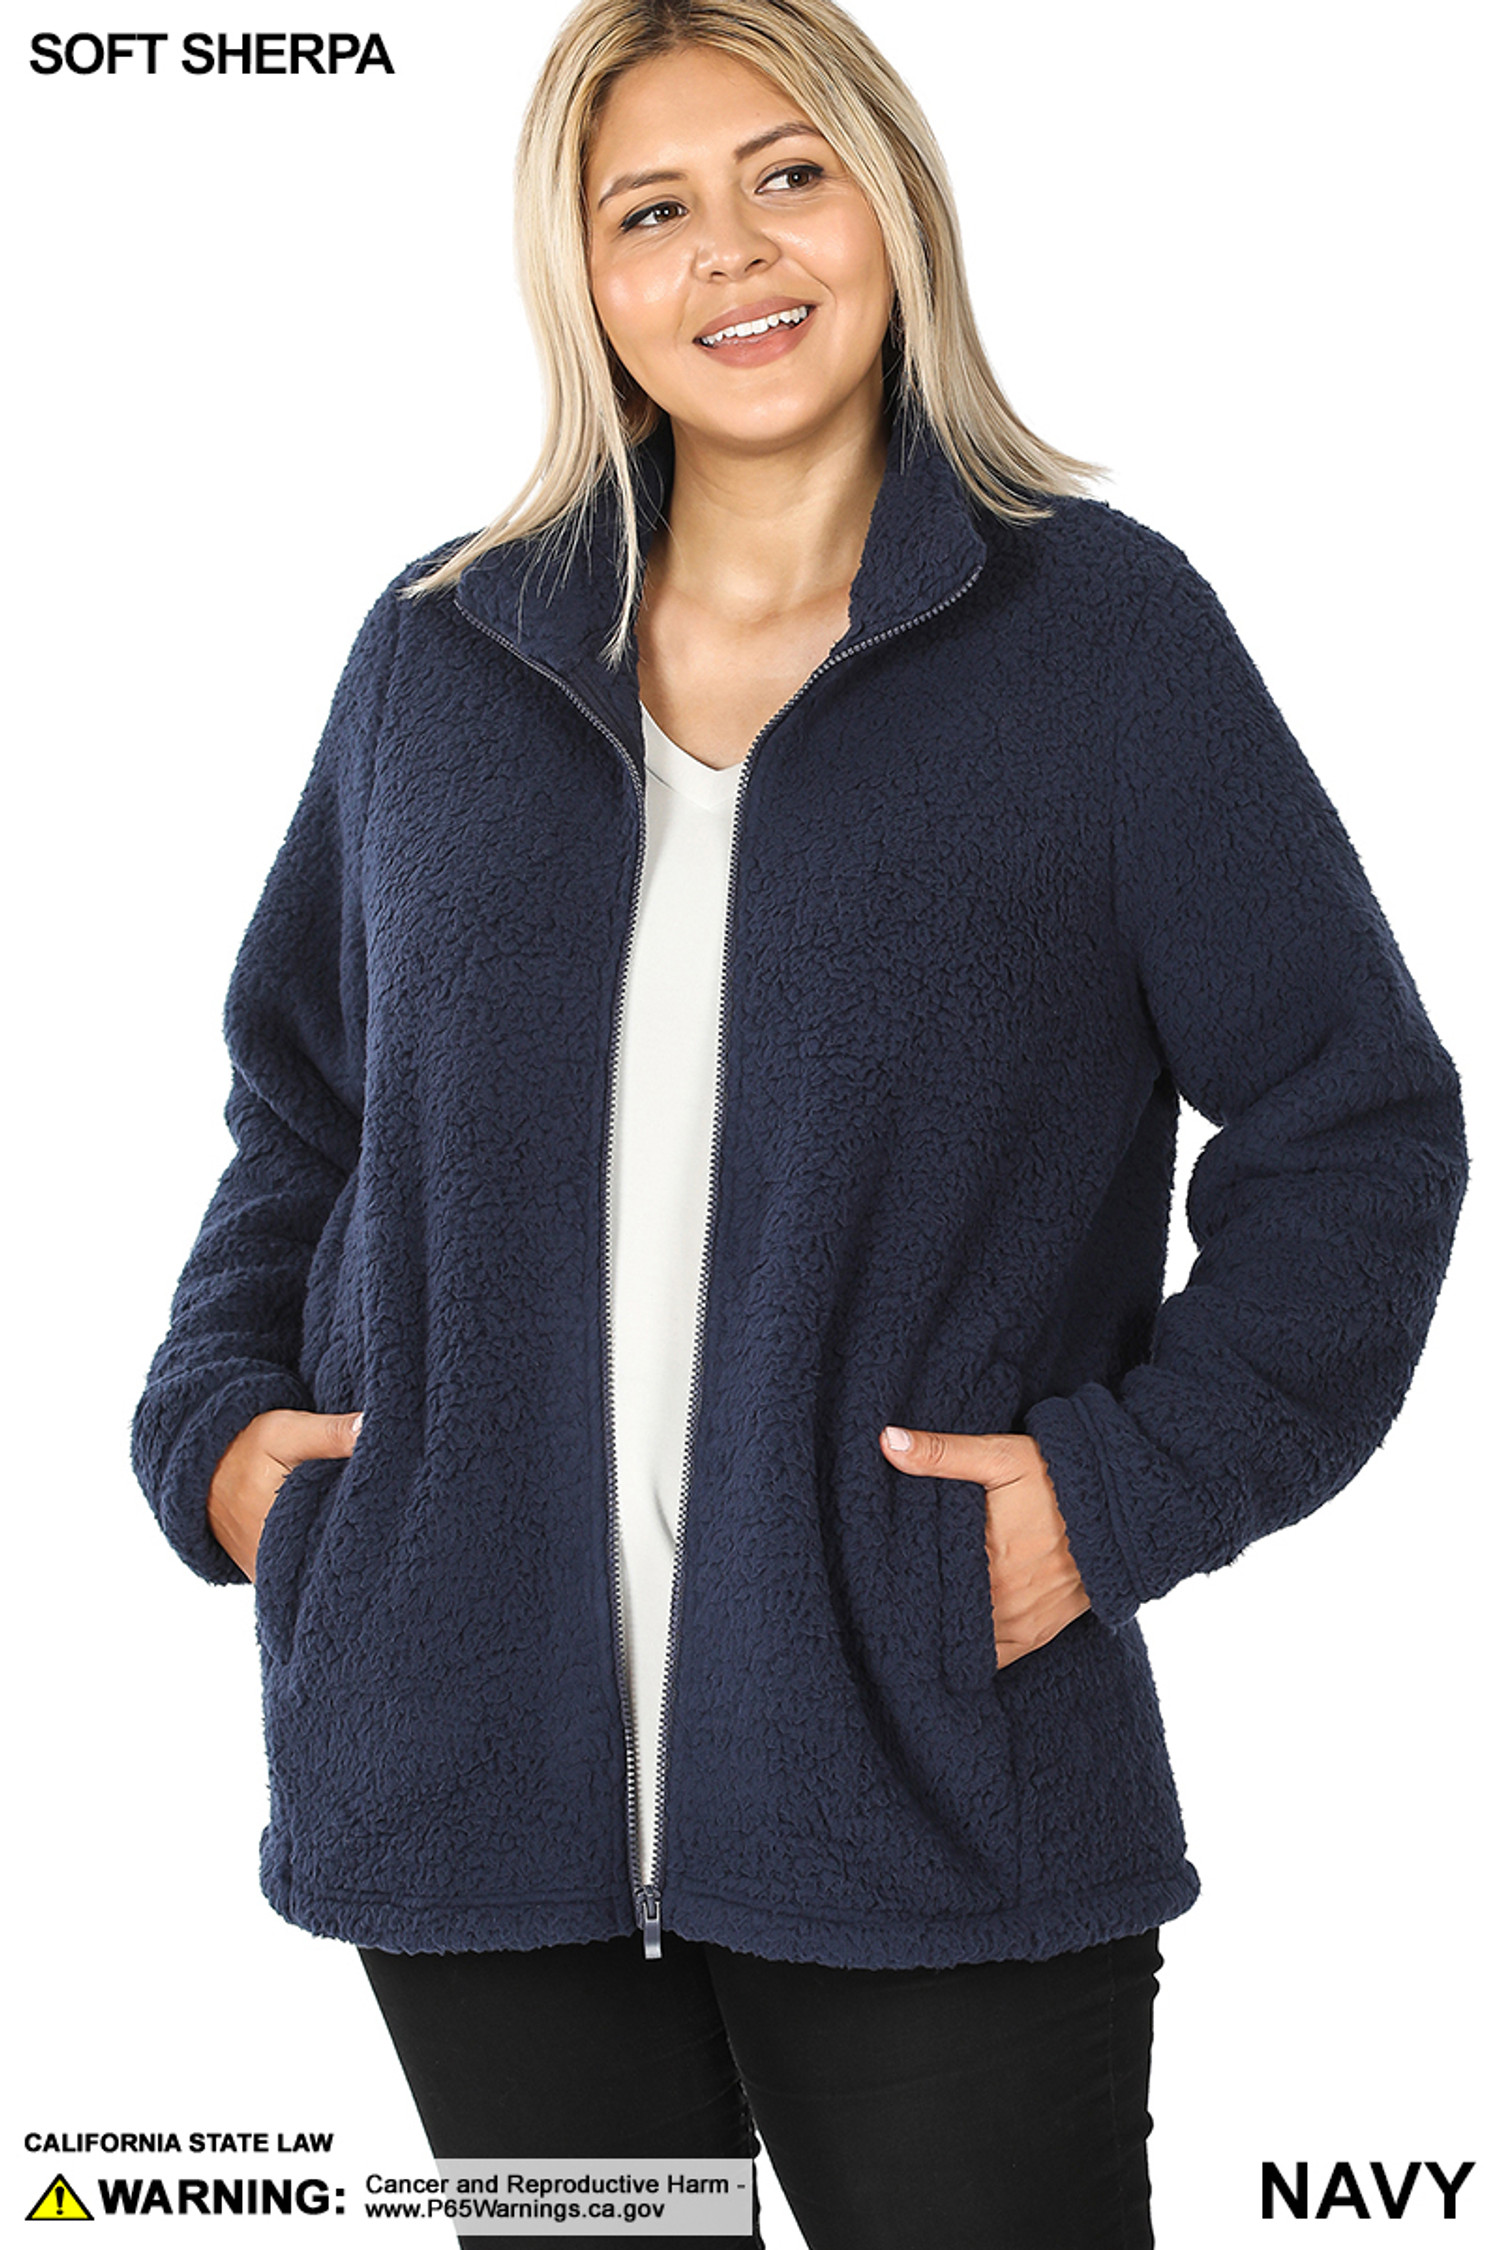 Front unzipped image of Navy Sherpa Zip Up Plus Size Jacket with Side Pockets